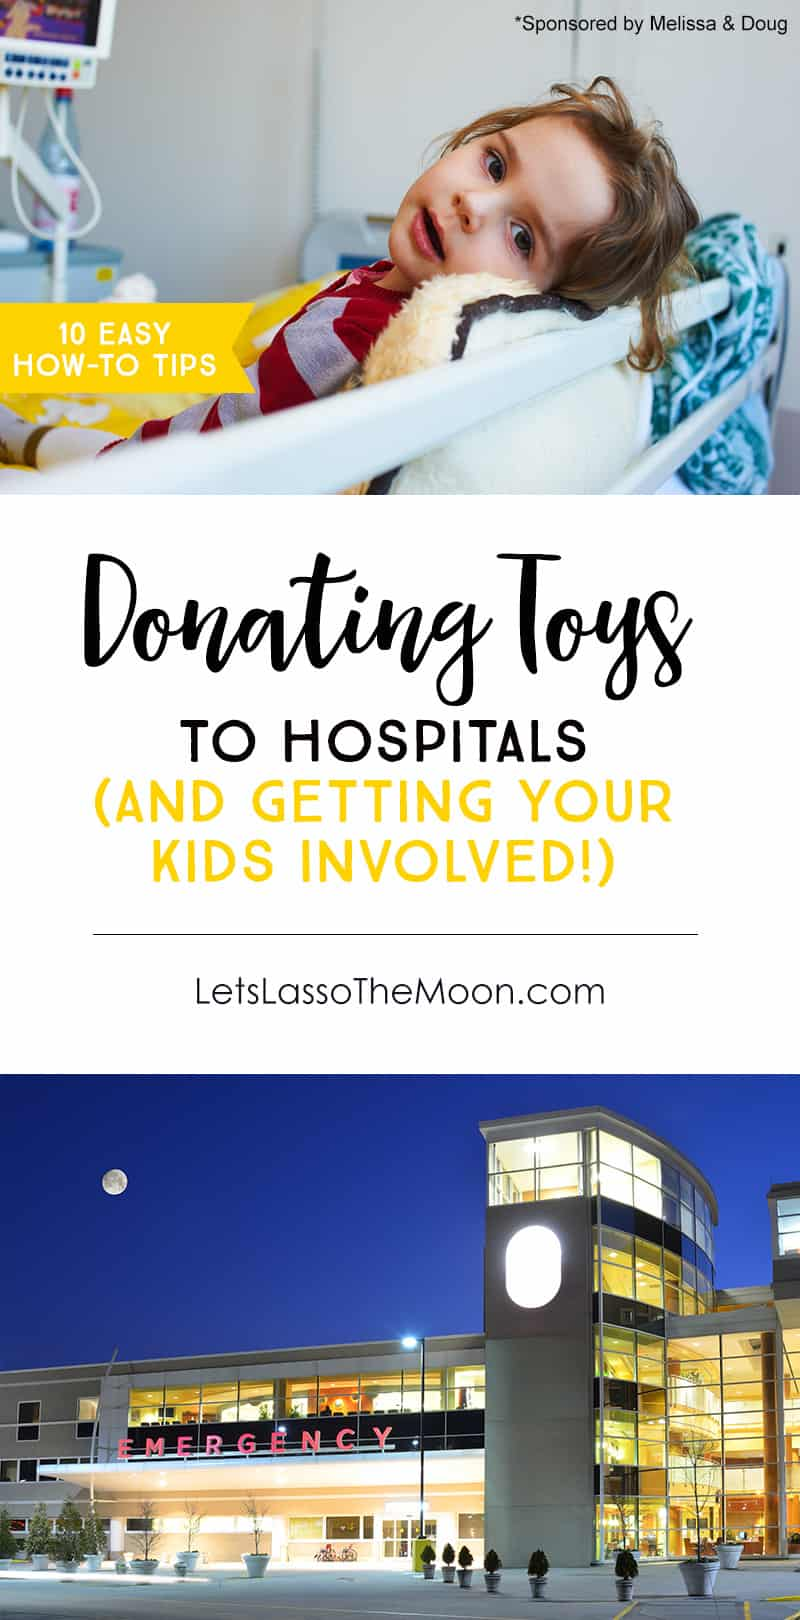 10 Tips for Donating Toys to Hospitals (AND Getting Your Kids Involved) *LOve these suggestions!